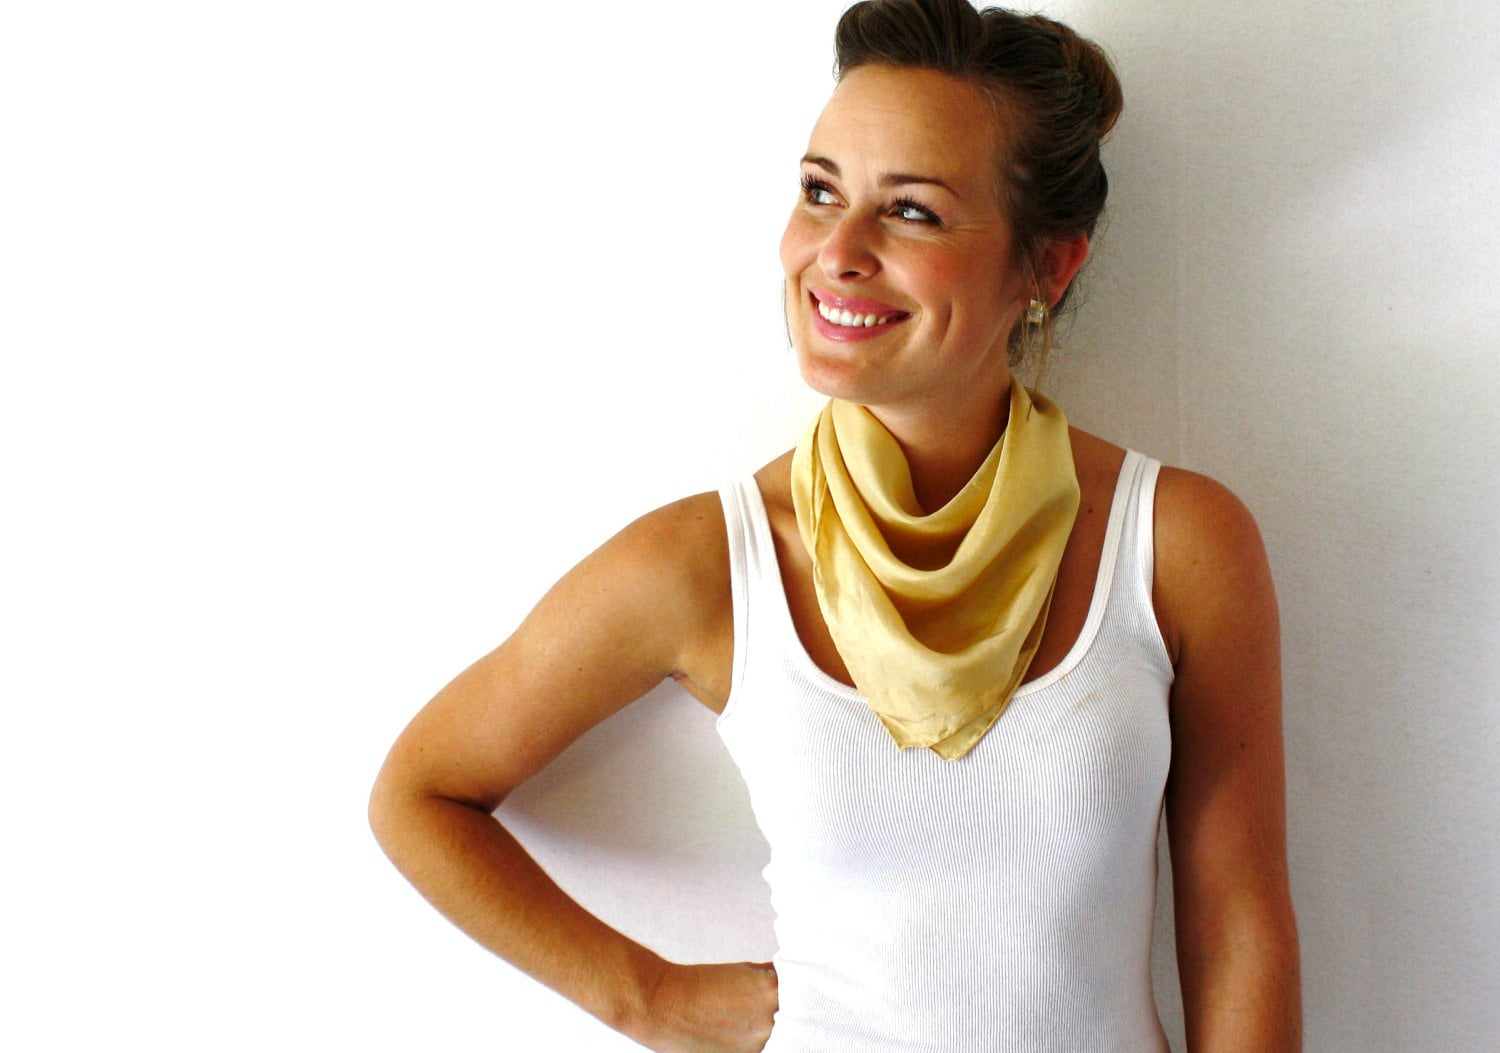 Gold Silk Scarf - Natural Dye- Hand Dyed Silk Scarf - Spring Fashion -Tan Scarf - Autumn - Mothers Day Gift - TheSilkMoon